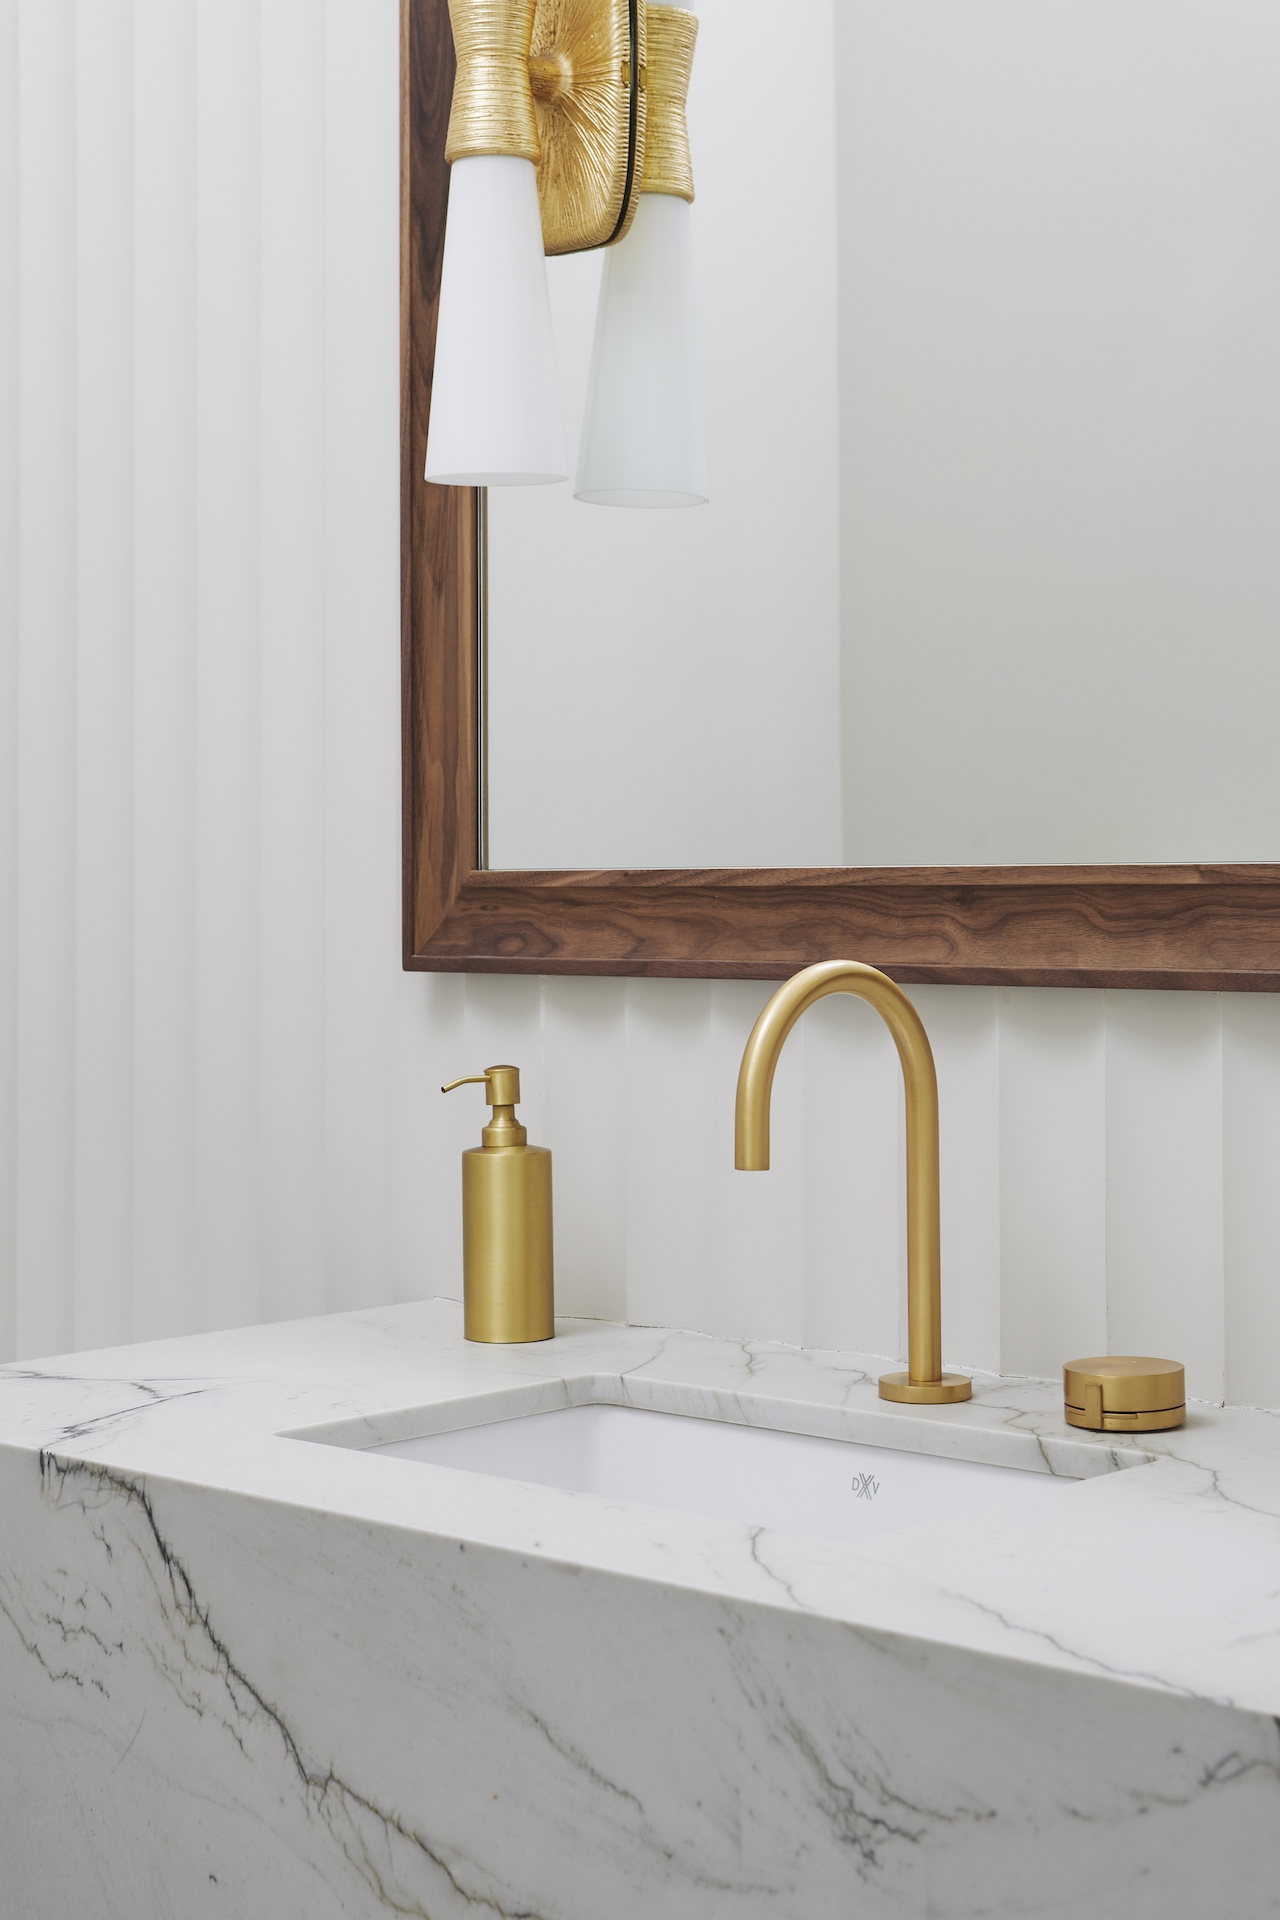 marble sink with gold faucet